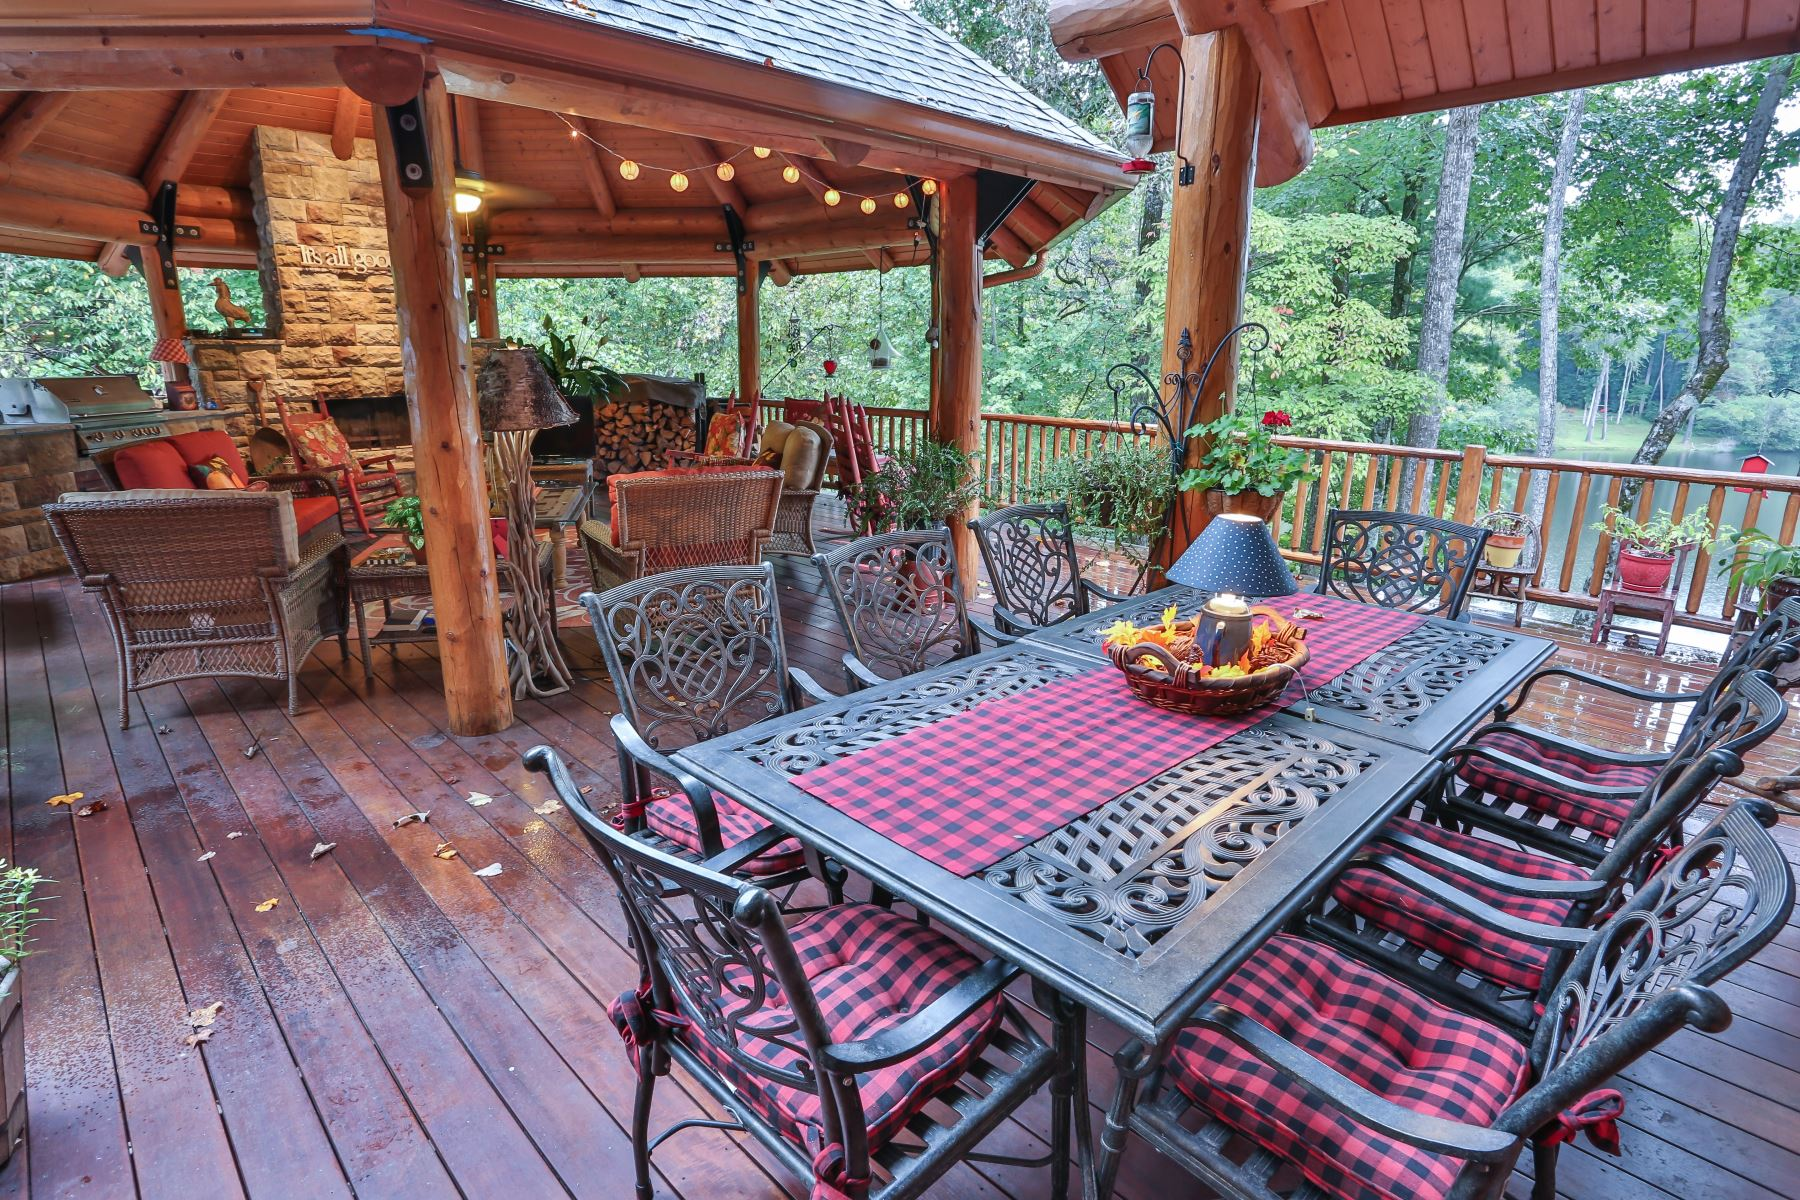 Amazing north georgia cabin for large groups, sleeps 12 and is pet friendly